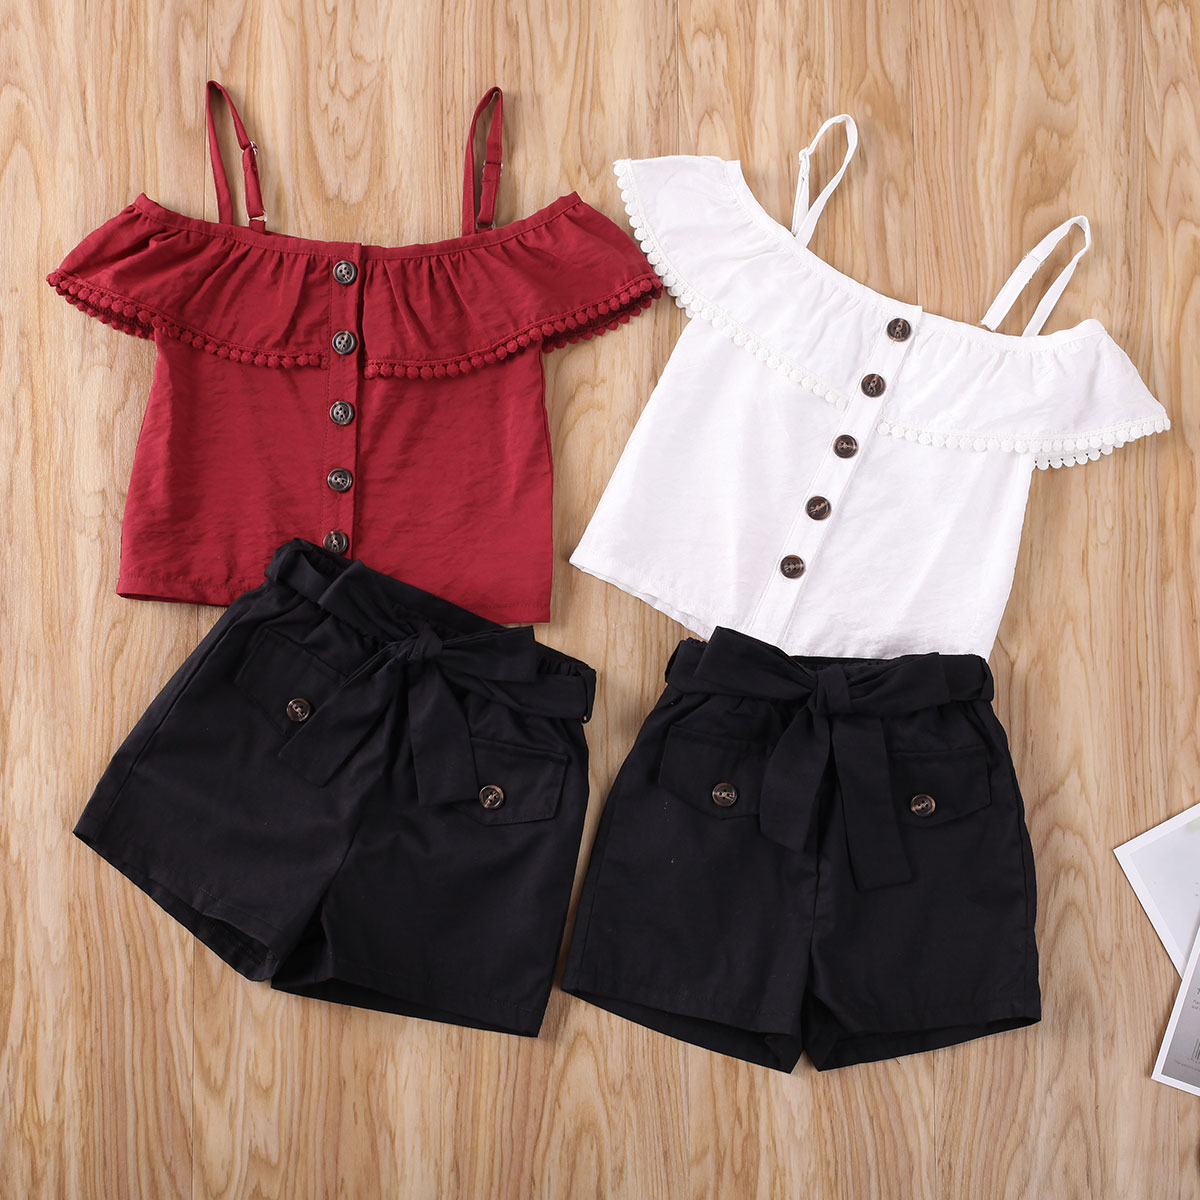 Kids Girls Summer Clothes Set  Toddler Kid Infant Girl Strap Shirt Top+Skirts Lovely Casual Outfits Kids Girl Clothing Sets 1-5T